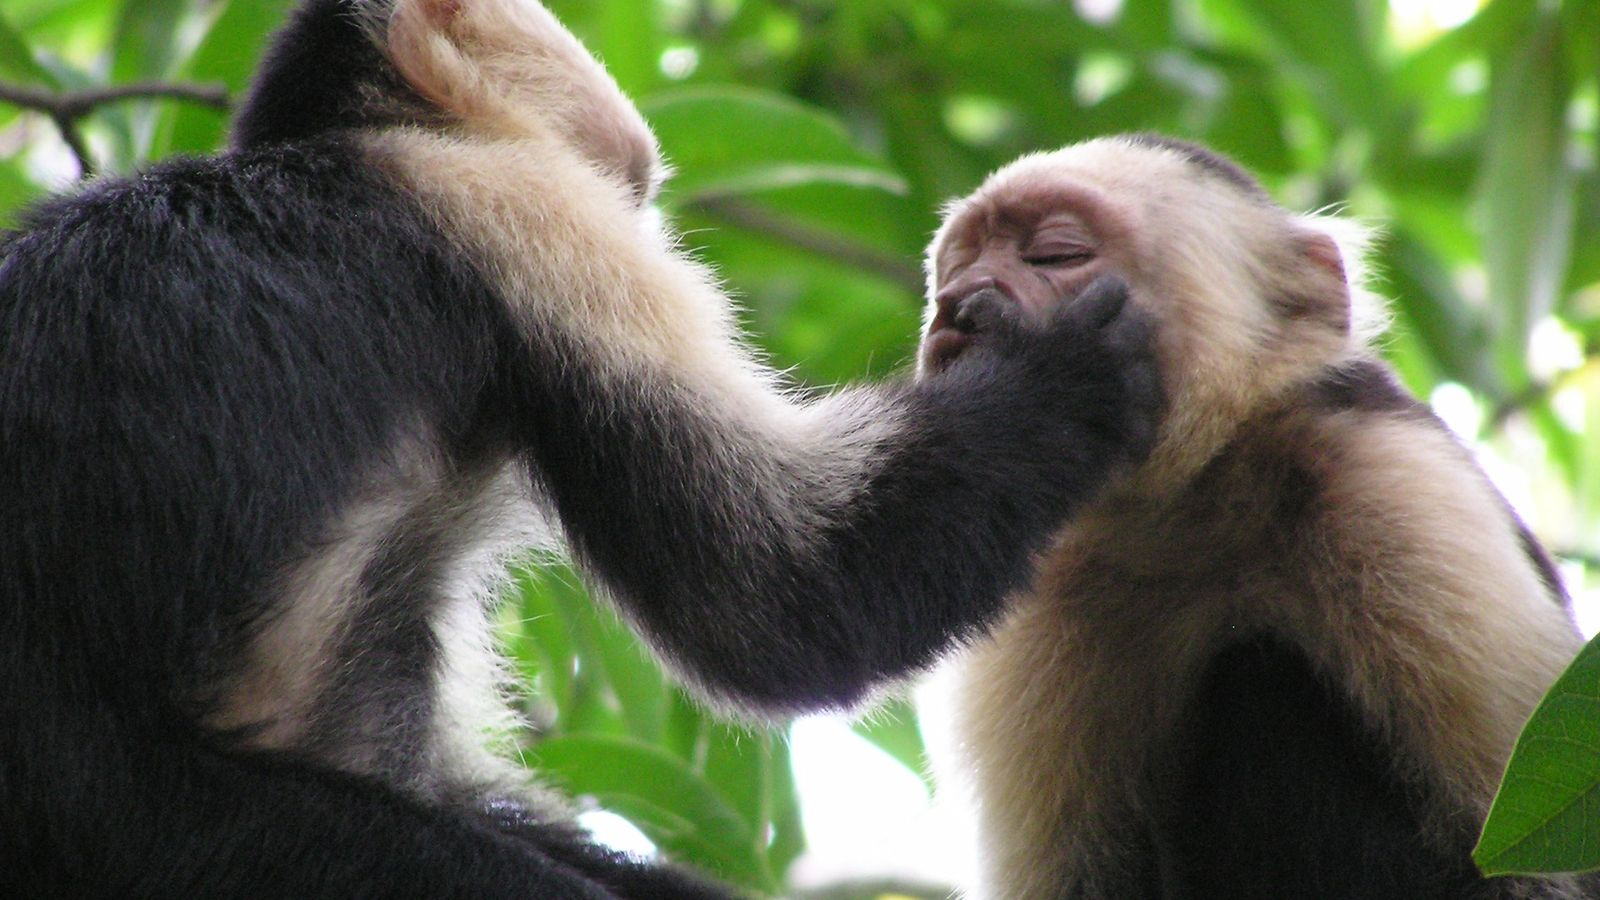 Panamanian white-faced capuchins (Cebus capucinus) perform odd behaviors such as poking each other in the nose ...